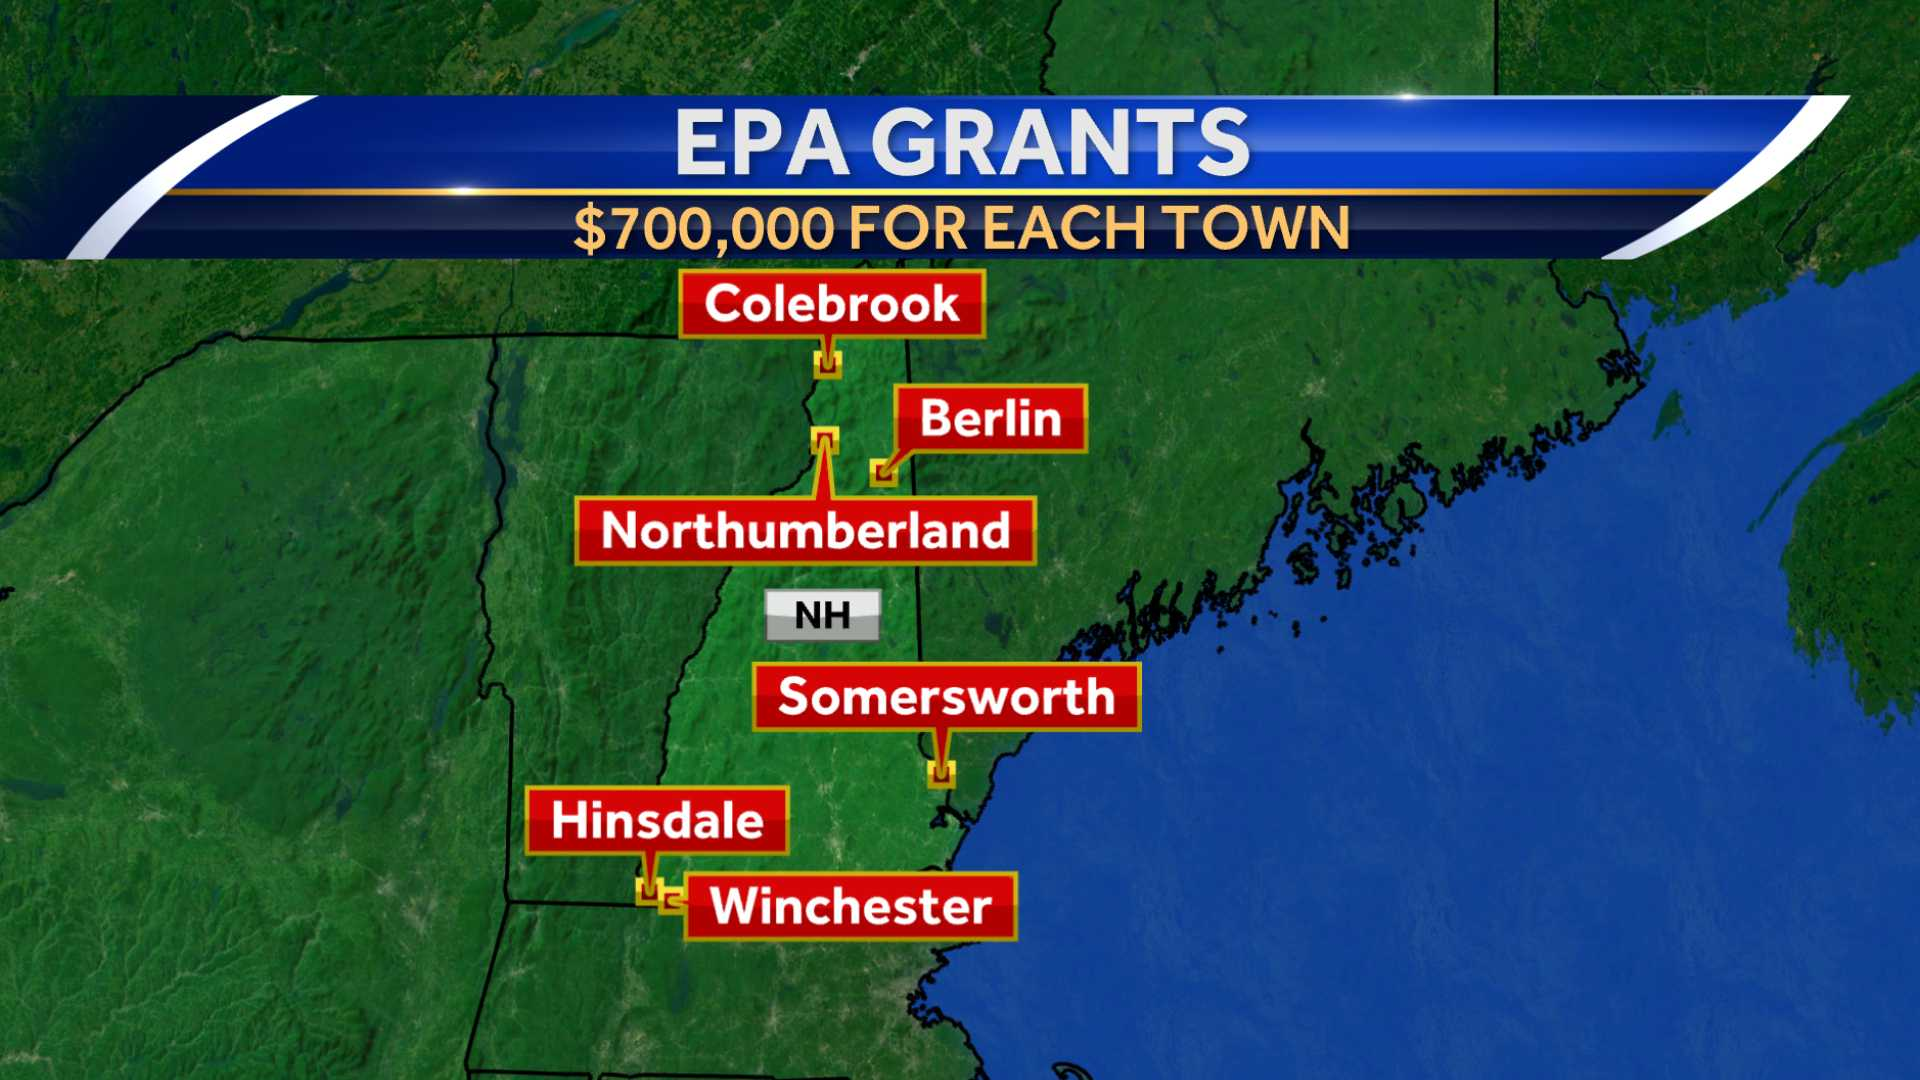 6 towns getting $700K in EPA grants to clean up sites